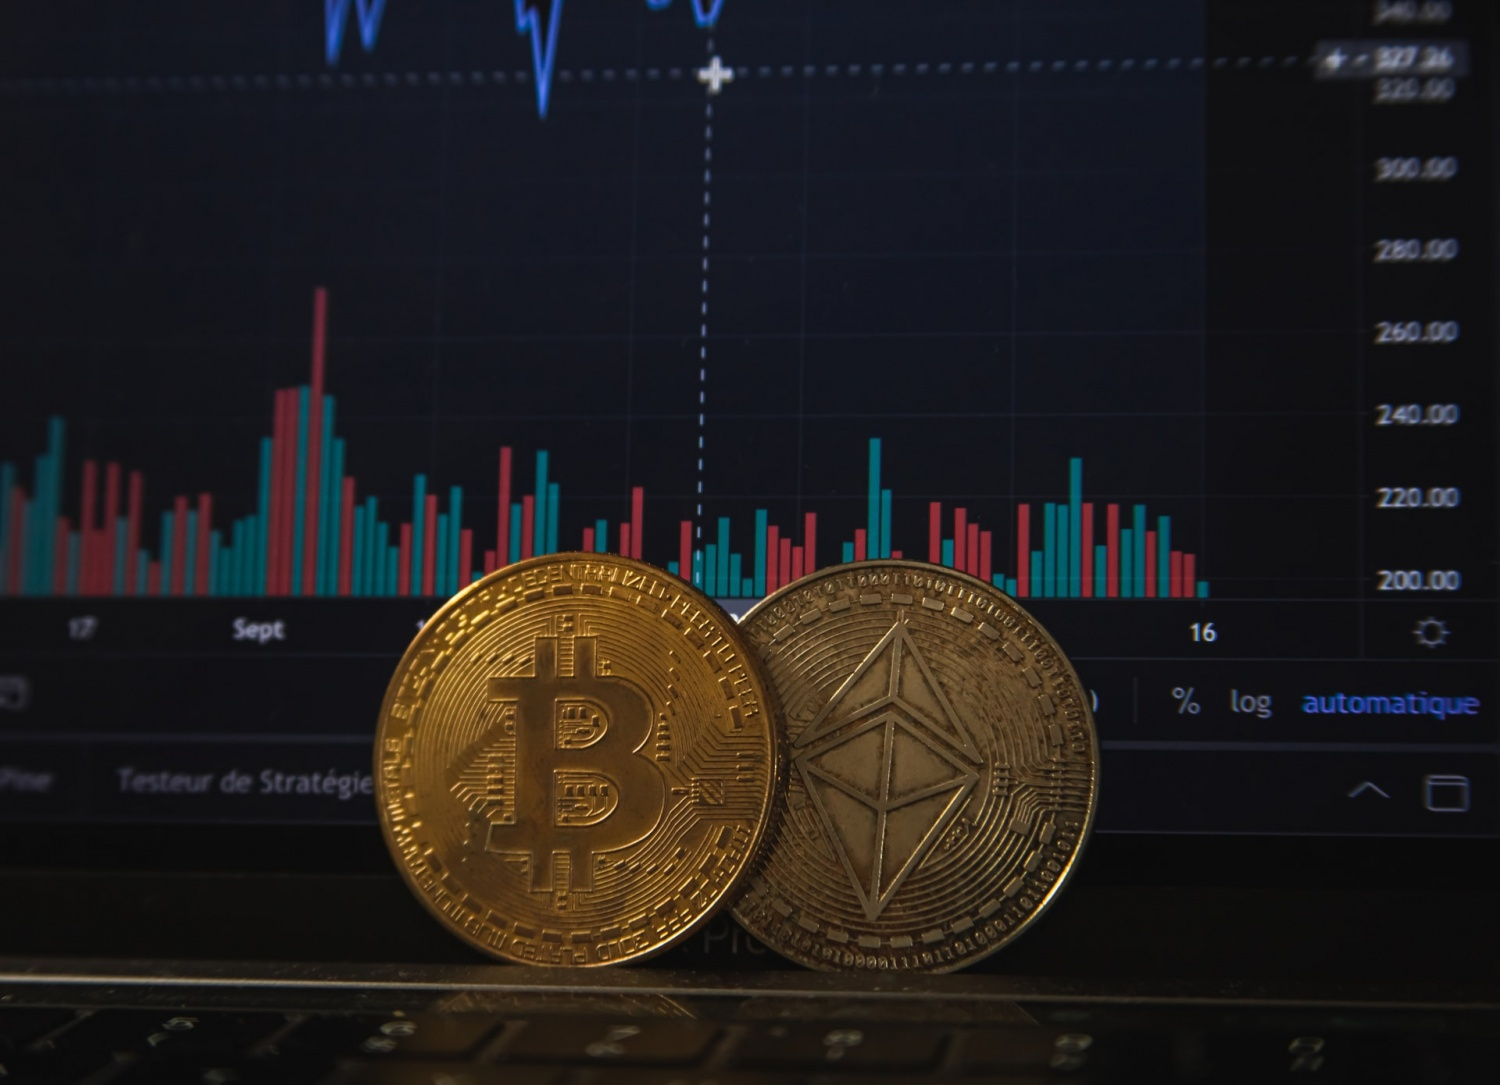 Ethereum Price Prediction 2021: Experts Hint Massive Boom to Surpass Bitcoin